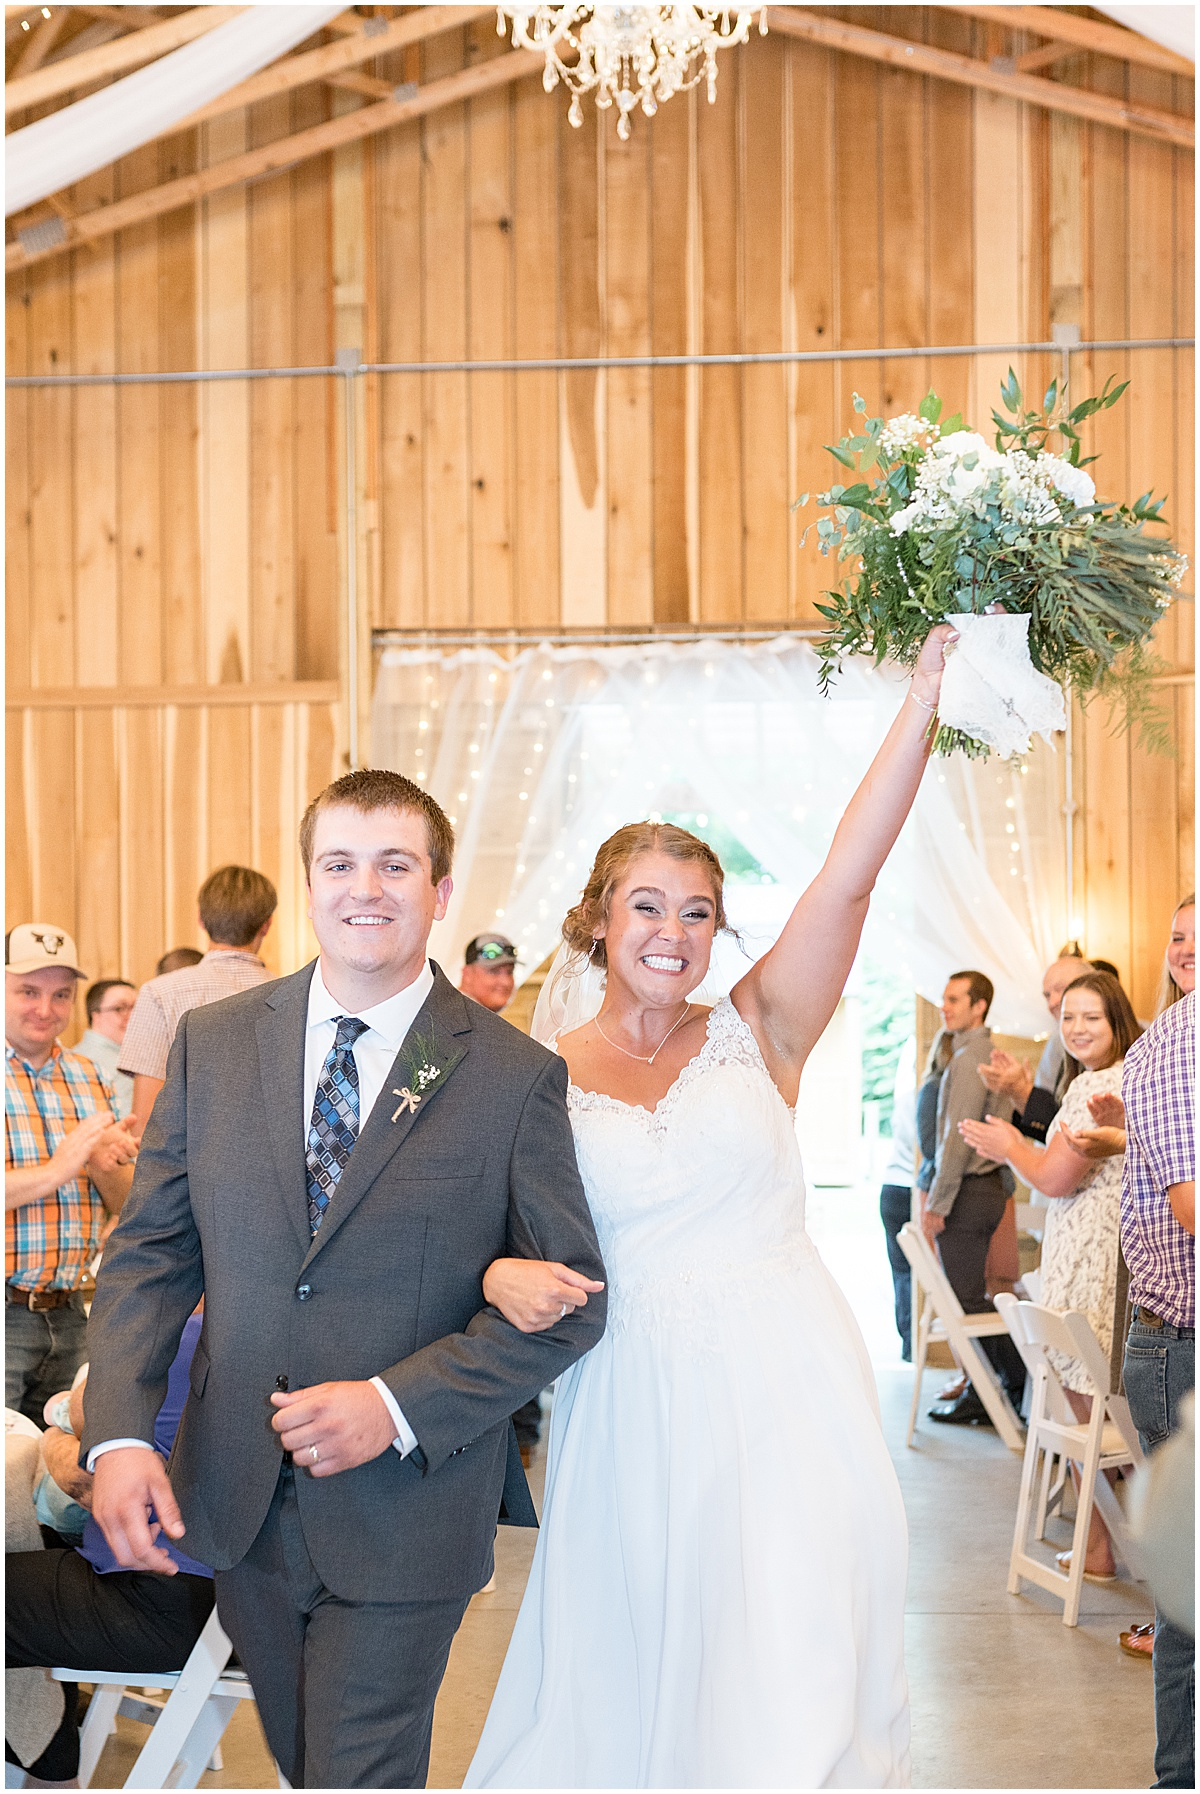 Grand entrance at Hawk Point Acres Wedding in Anderson, Indiana